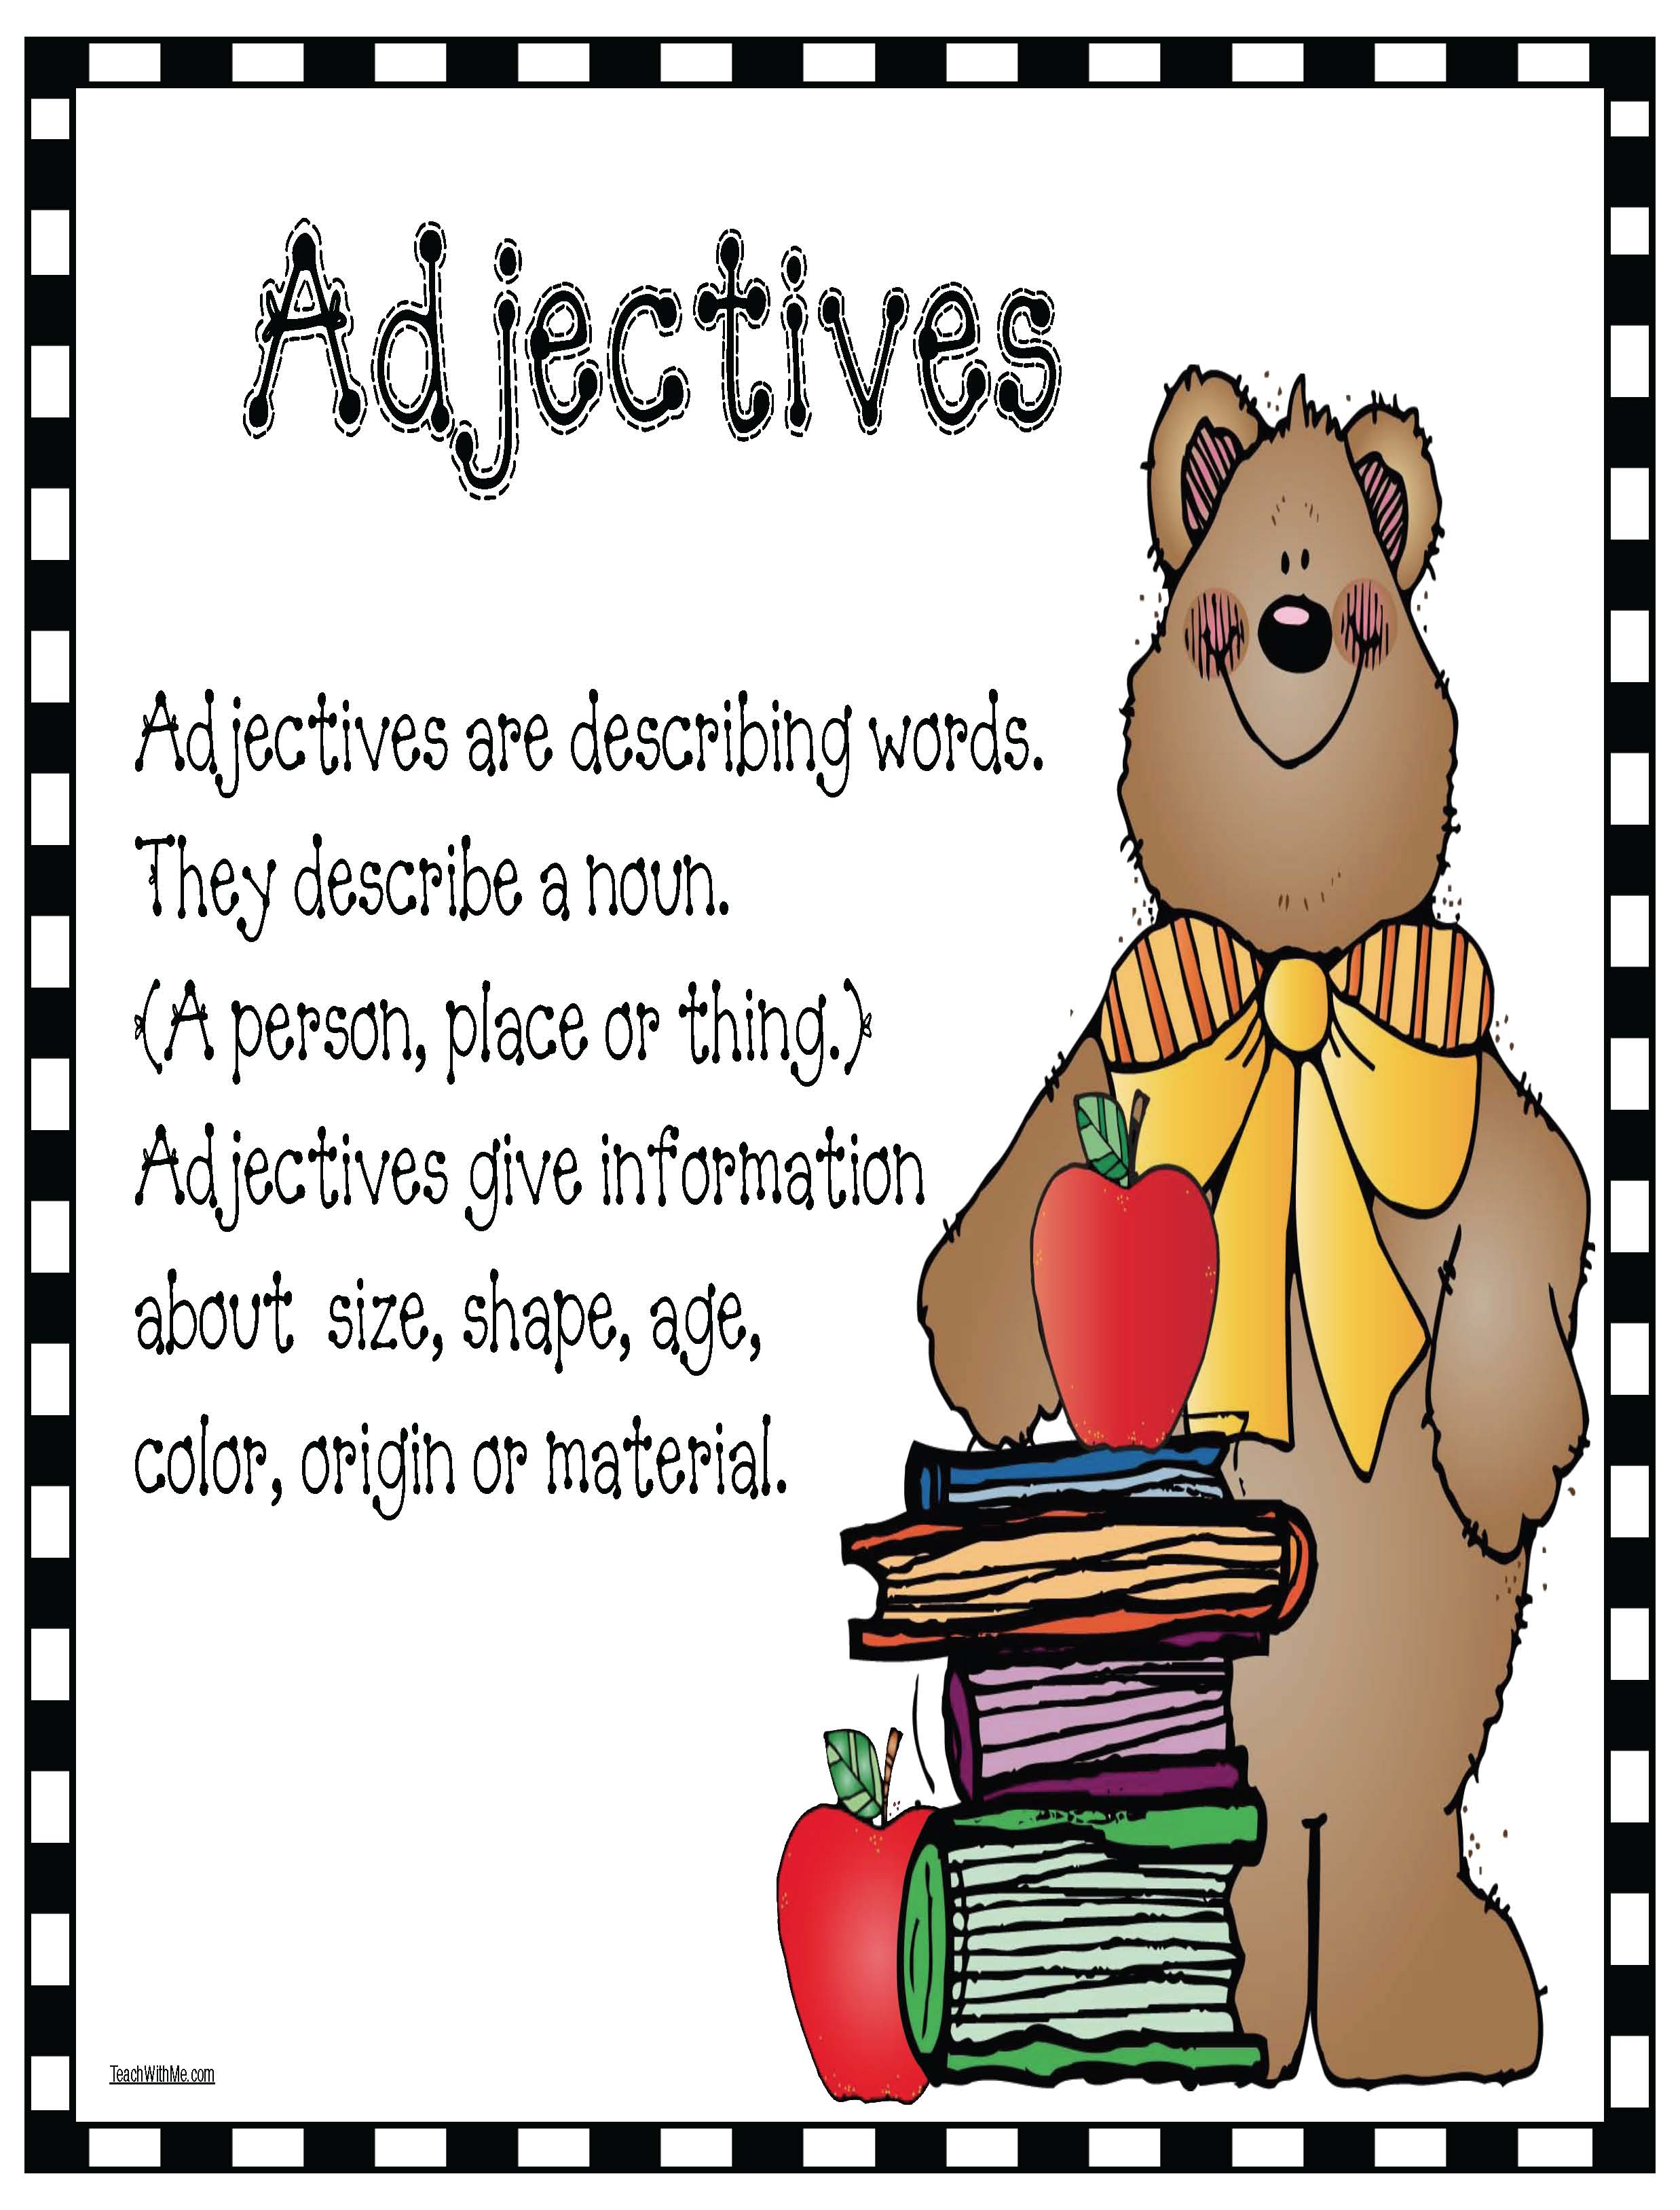 adjective poster, apple activities, september writing prompts, descriptive writing